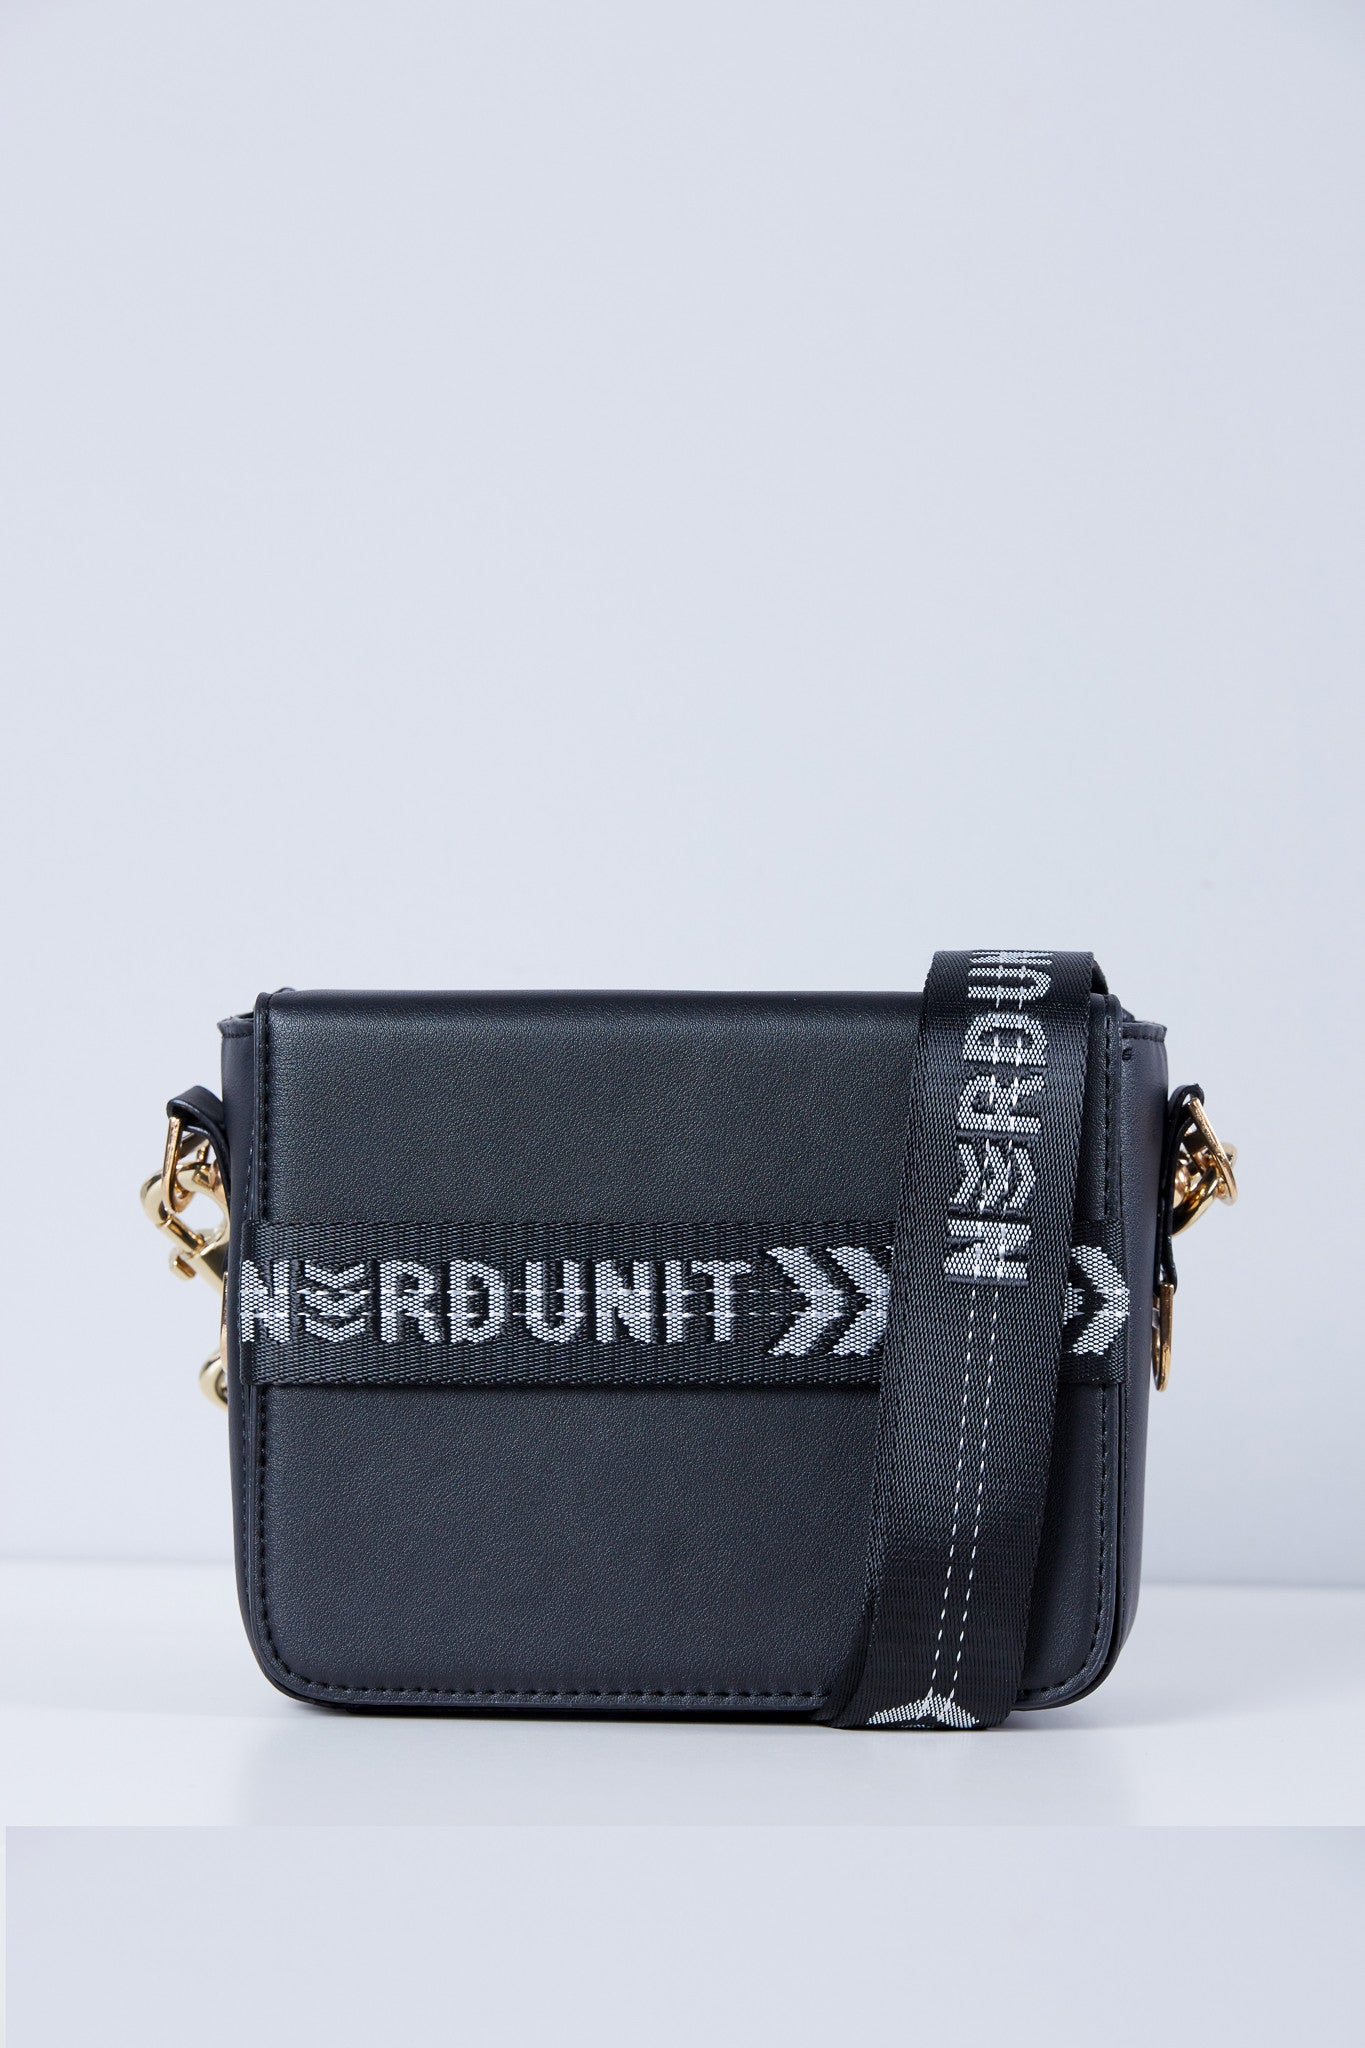 Construction Handbag (Black)